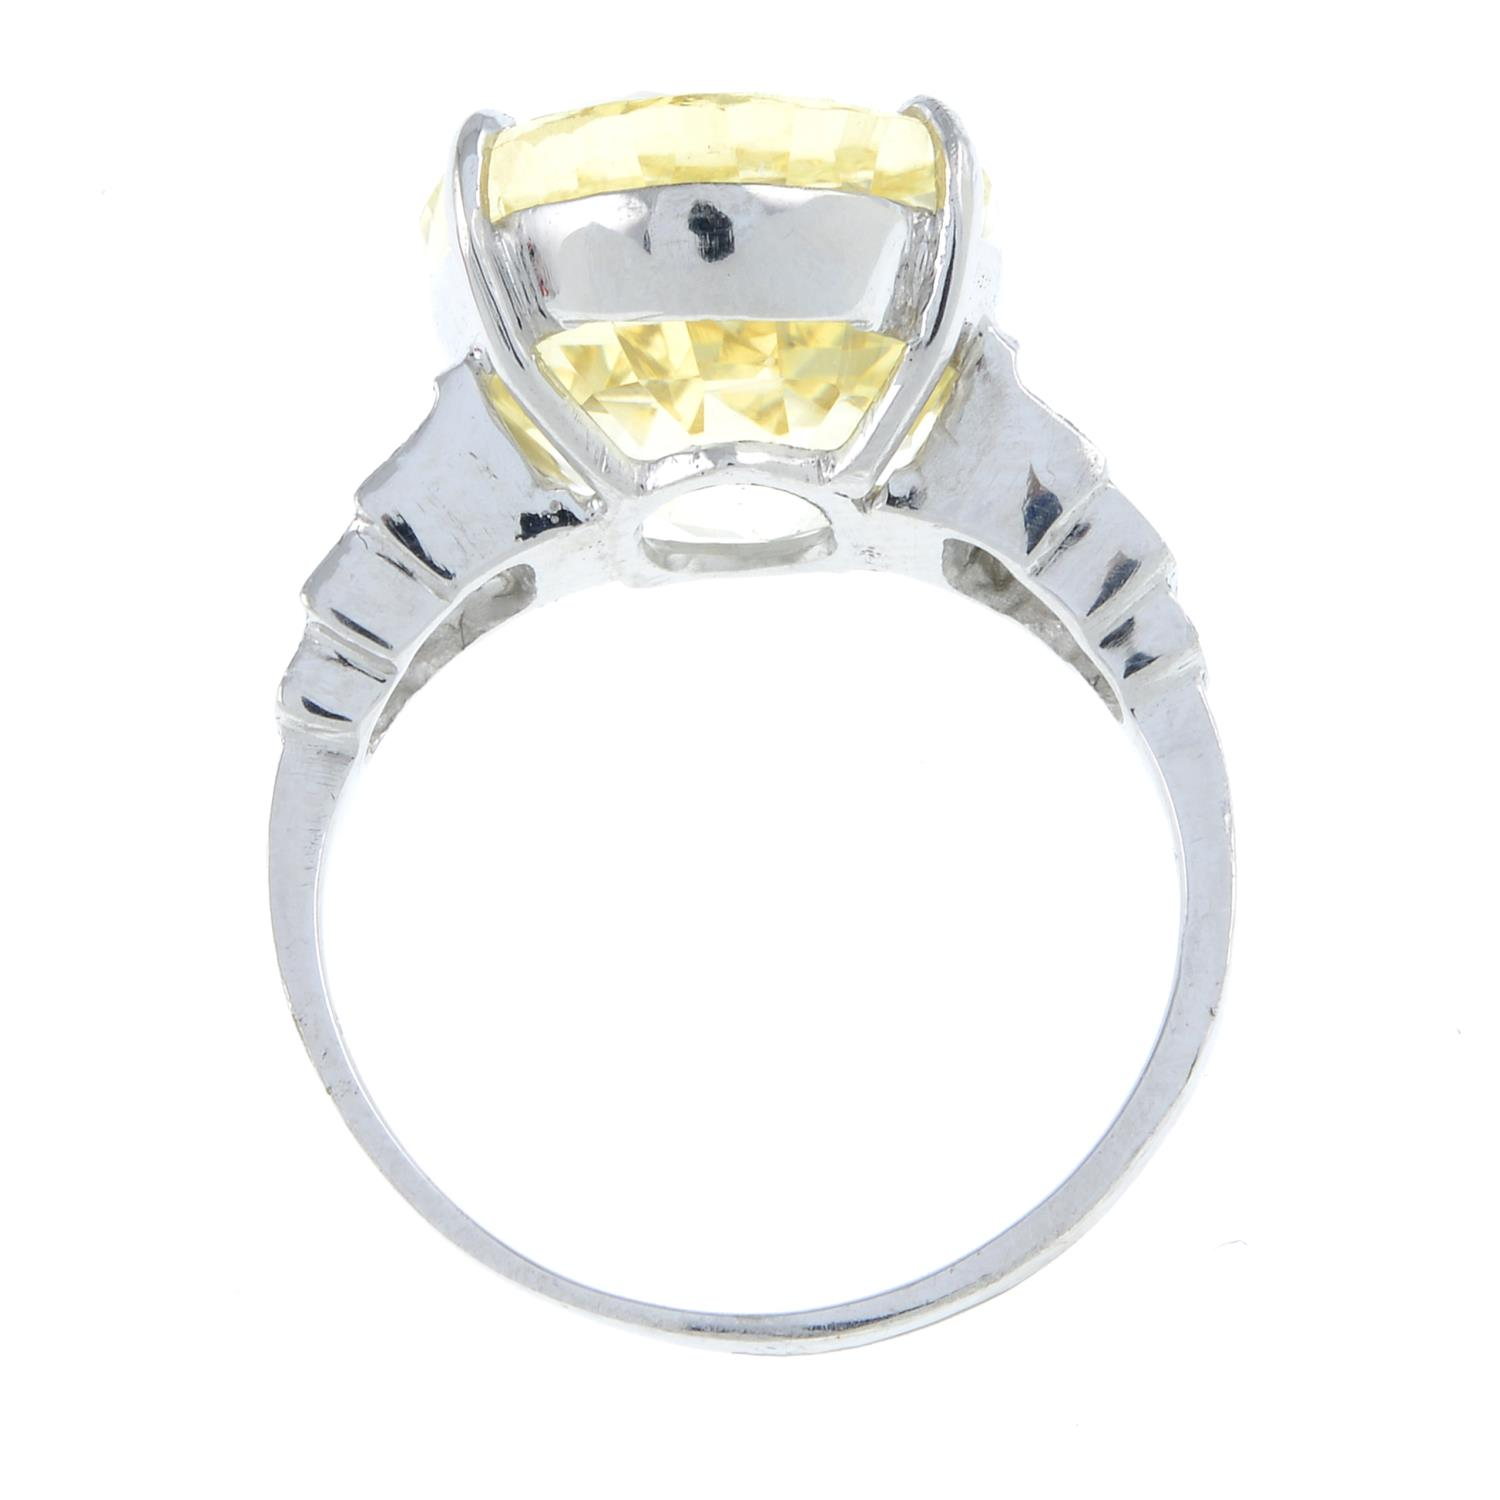 A yellow sapphire and diamond ring.Sapphire weight 15.31cts.Estimated total diamond weight 0.10ct, - Image 6 of 6